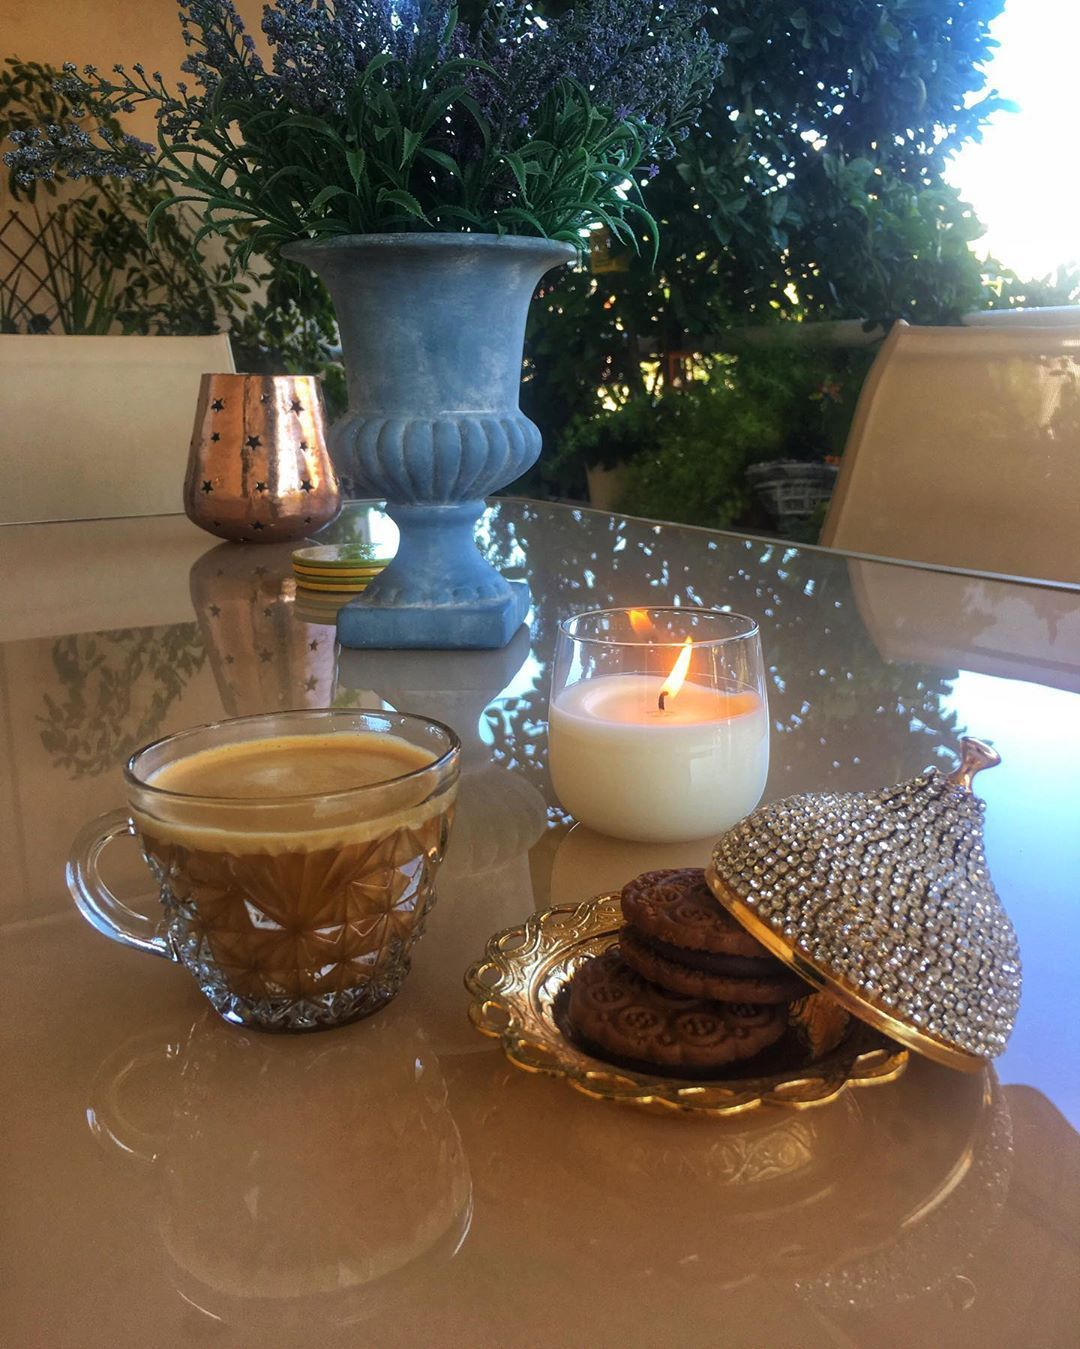 A relaxing peaceful evening at home is one of lifes greatest pleasures... #coffeetime #coffee #coffee_time #espresso ... #espressoathome A relaxing peaceful evening at home is one of lifes greatest pleasures... #coffeetime #coffee #coffee_time #espresso ... #espressoathome